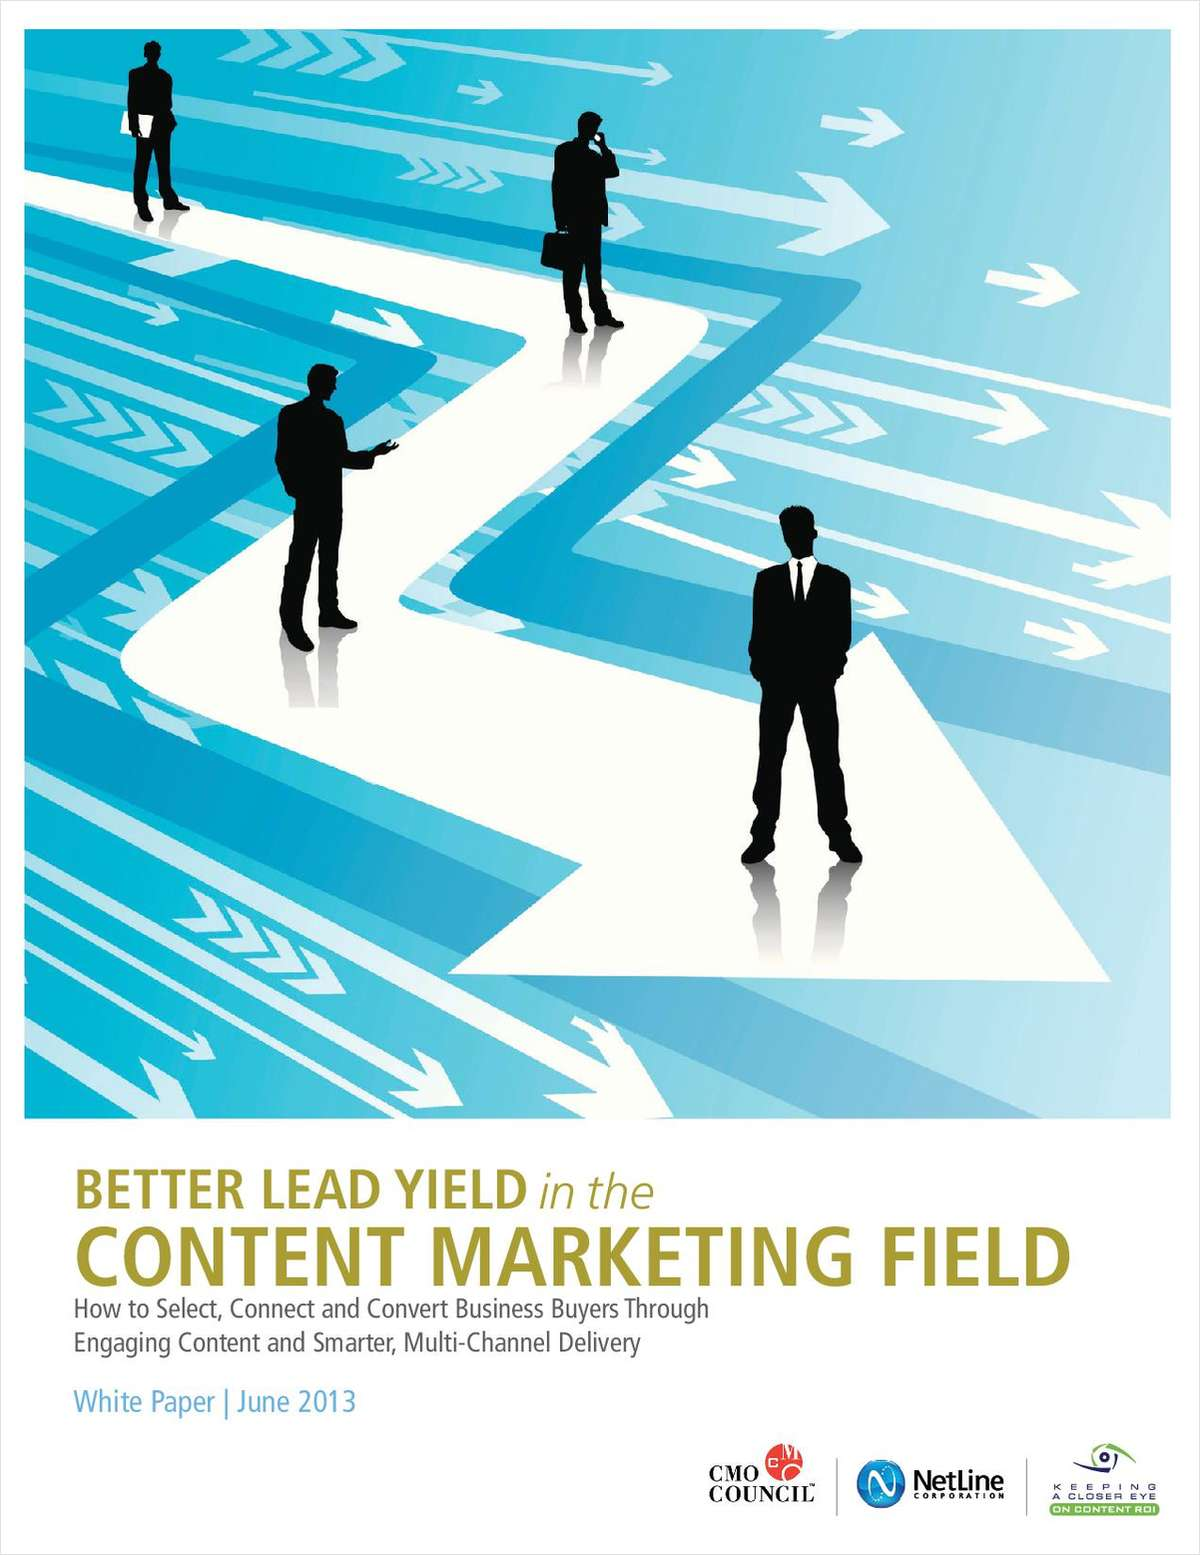 Better Lead Yield in the Content Marketing Field